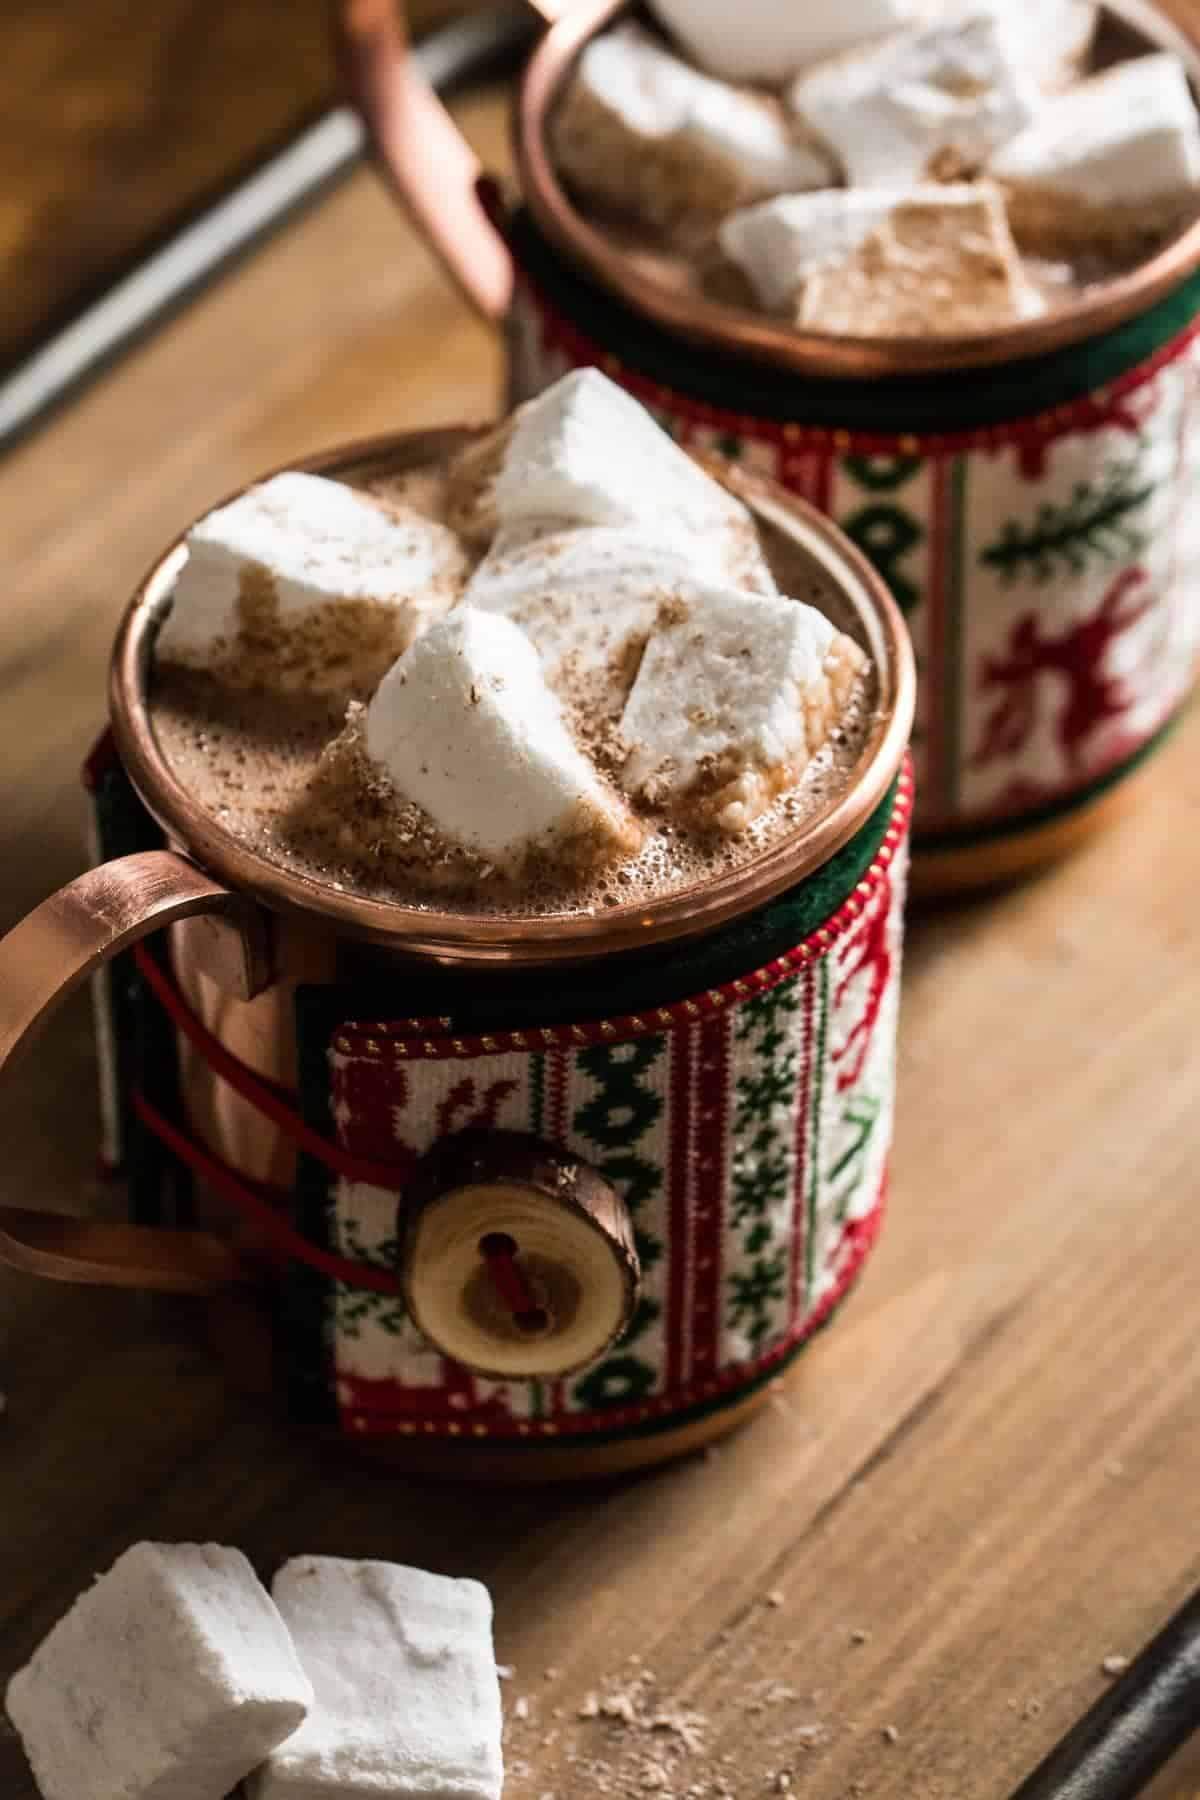 homemade-marshmallows-recipe-fluffy-sweet-and-so-easy-hot-cocoa-little-rusted-ladle-food-photography-web-5